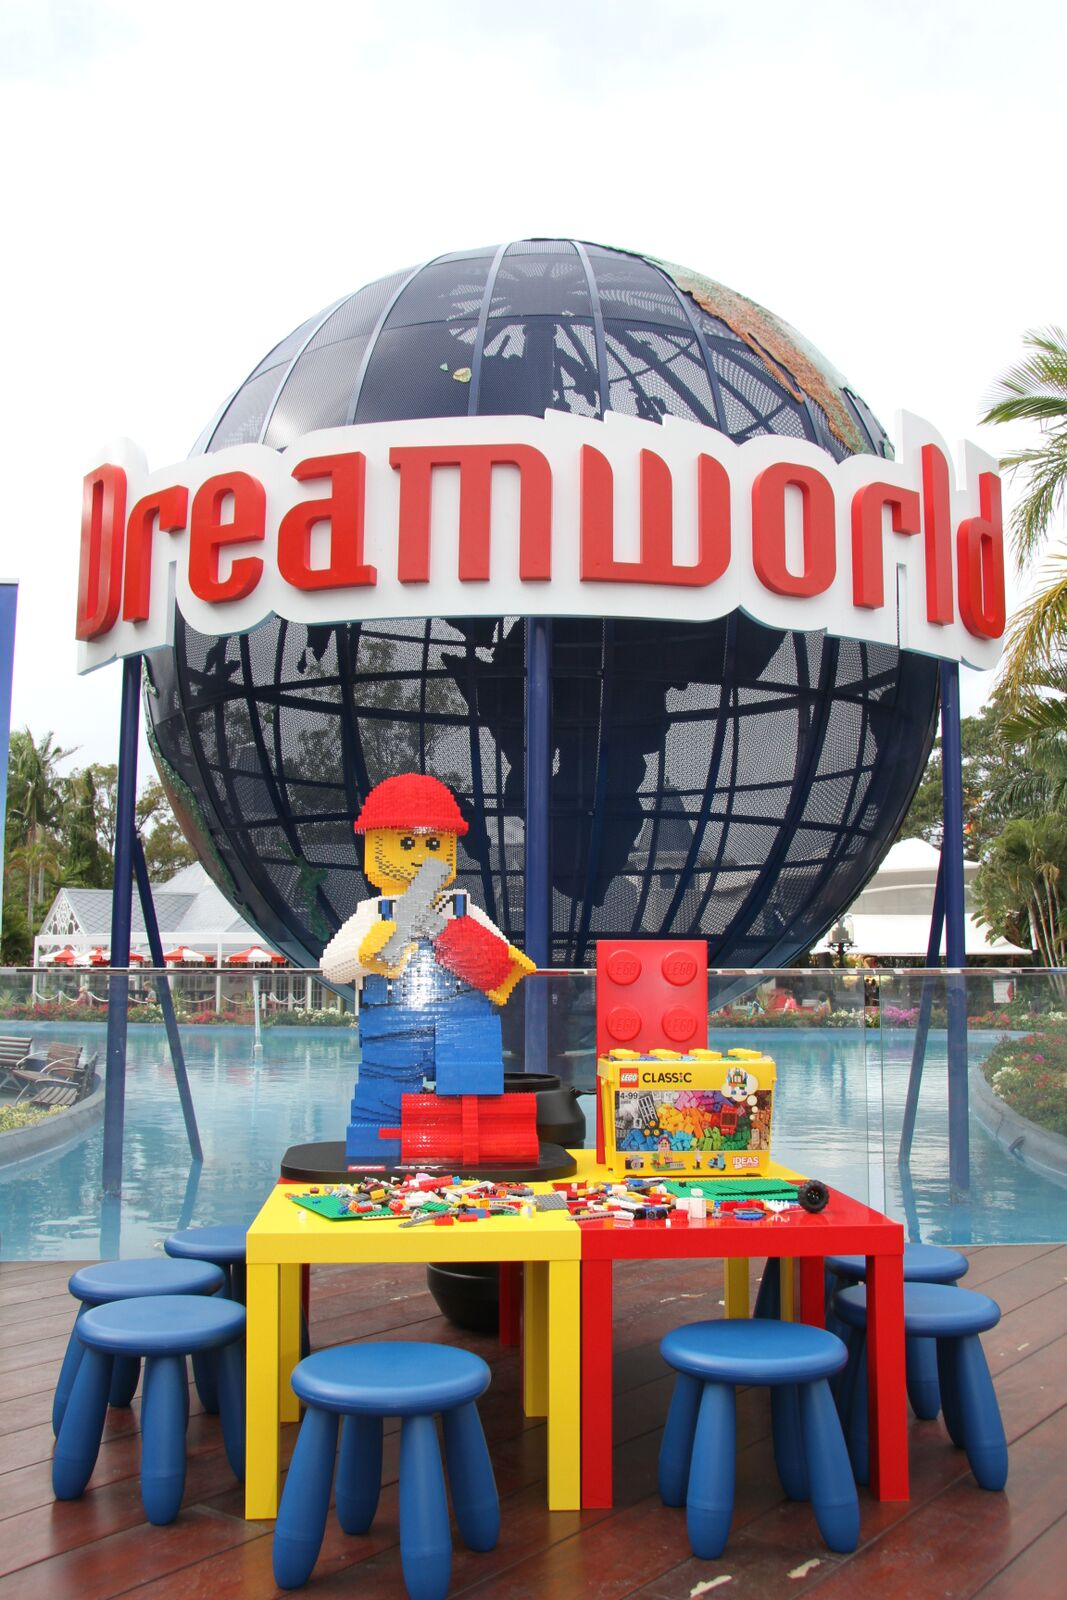 Dreamworld Lego Store - Picture source: Dreamworld